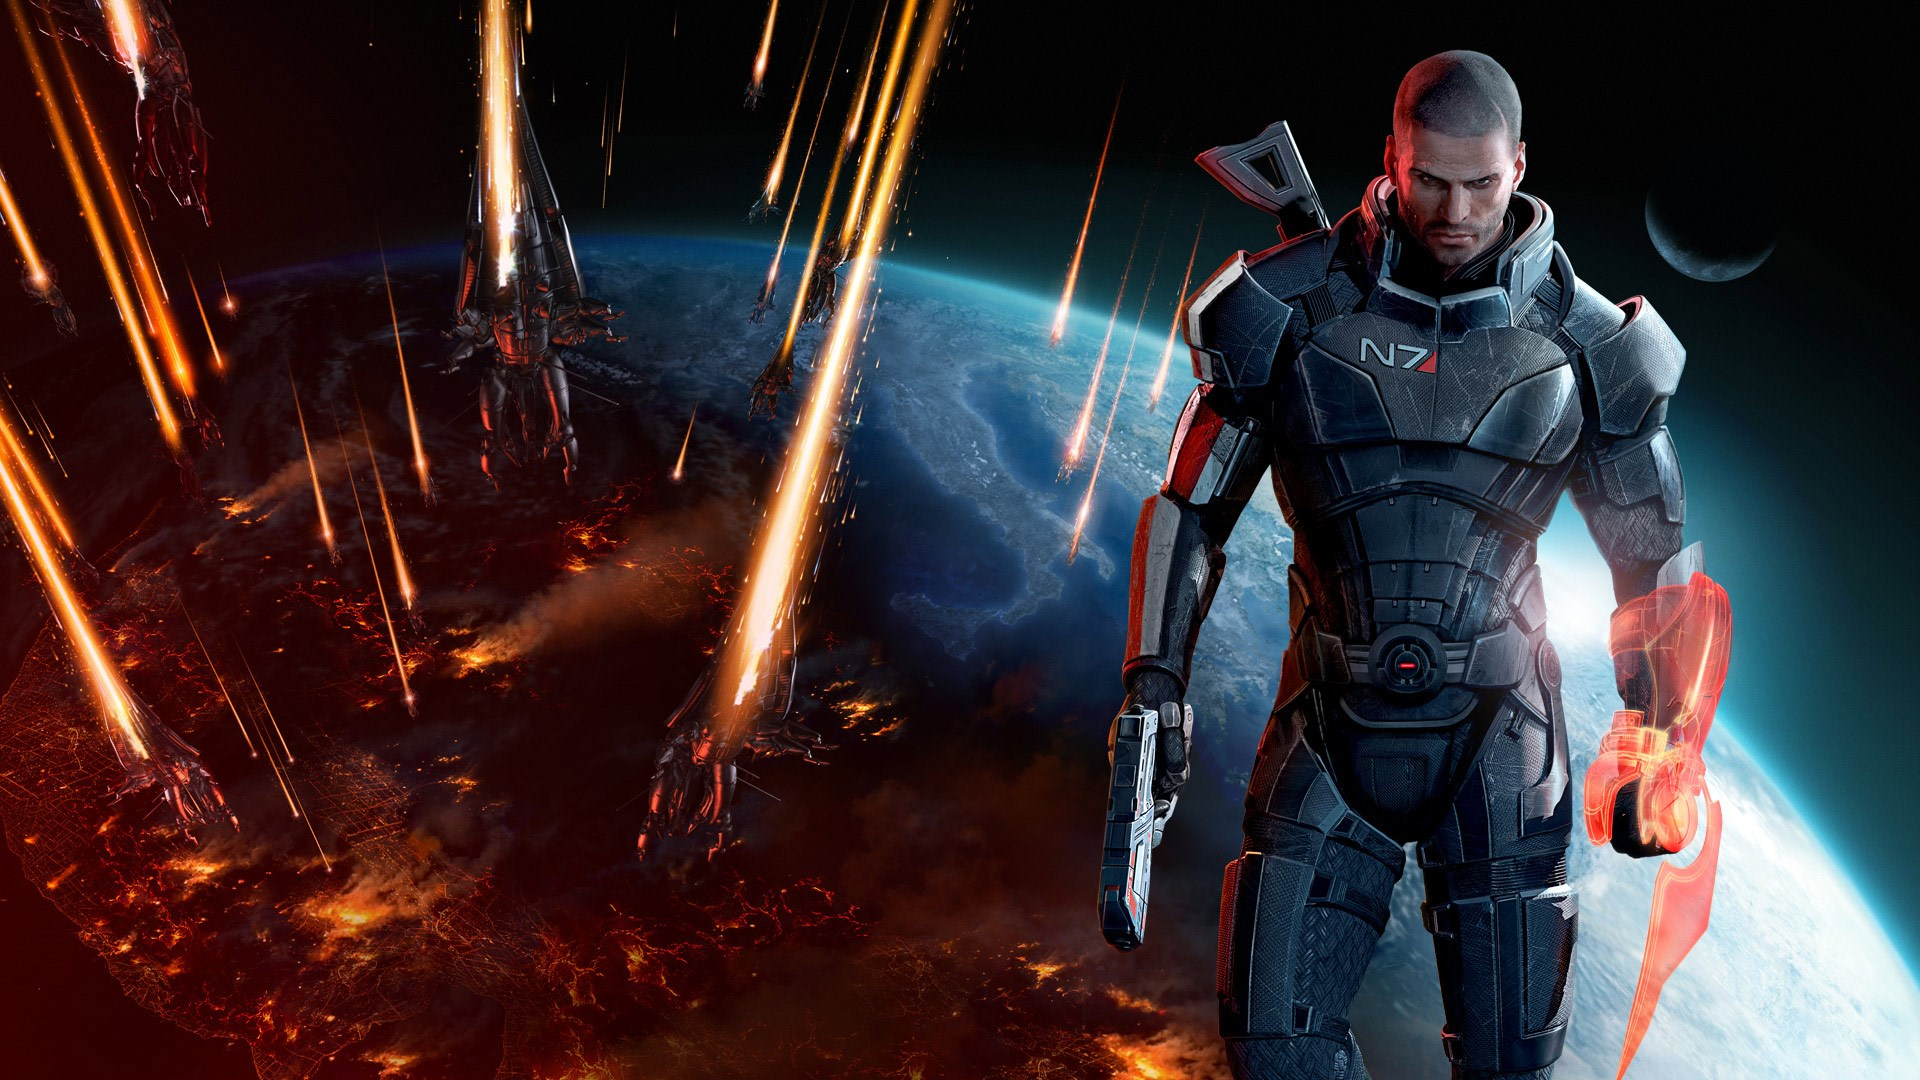 mass effect 3 in PC Games